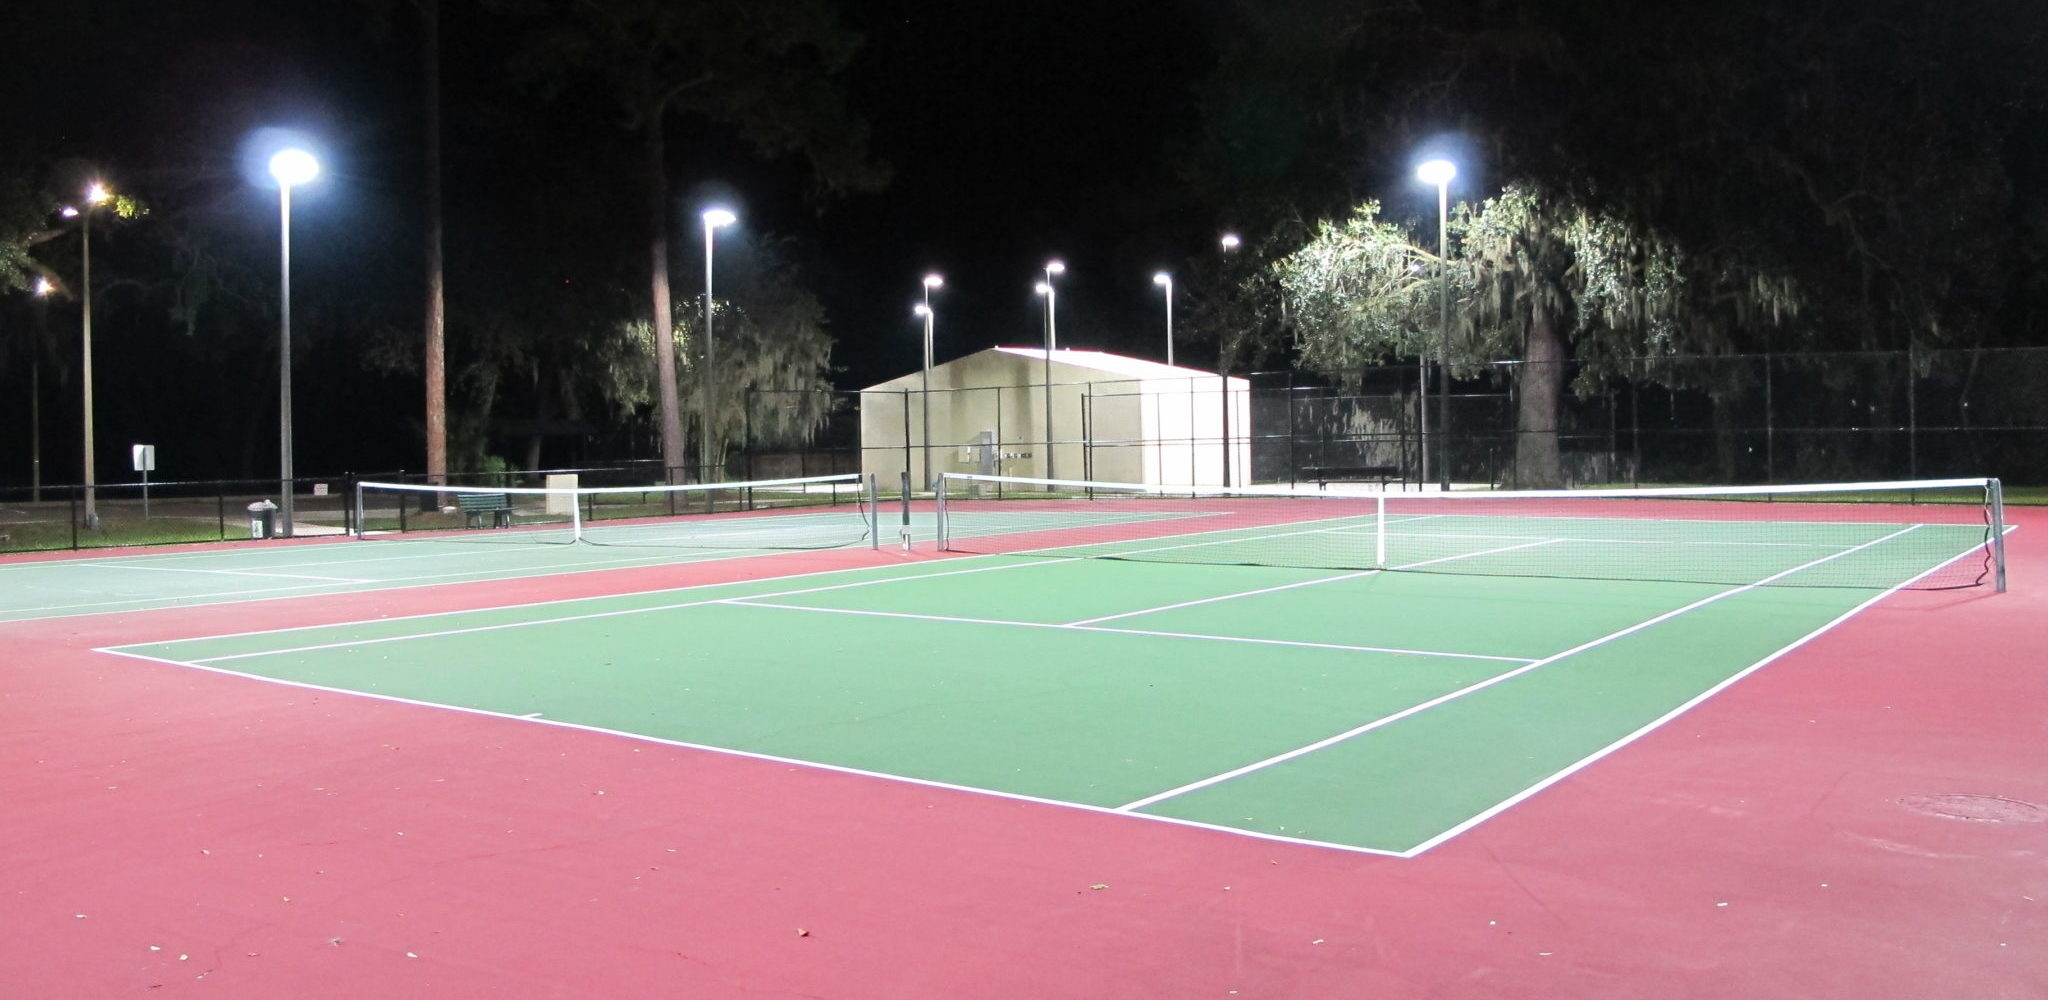 LED Lighting at Tennis Court in Safety Harbor, Florida. Tennis Court LED Lighting. Tennis Court LED Lighting Pinellas County. LED Lighting for tennis courts in clearwater, florida. LED lighting for tennis courts in Florida. Arkon Power provided and installed LED Court Lighting at the Tennis Courts at Marshall Street Park in Safety Harbor, Florida. The switch to LED reduced the overall power usage by over 70% and made the tennis courts much brighter for the players. LED Tennis Court lighting in Tampa Bay has become a large industry. LED lighting for pickleball courts in Tampa, Clearwater, Pinellas county, hillsborough, LED Lighting for tennis courts in Pasco County.